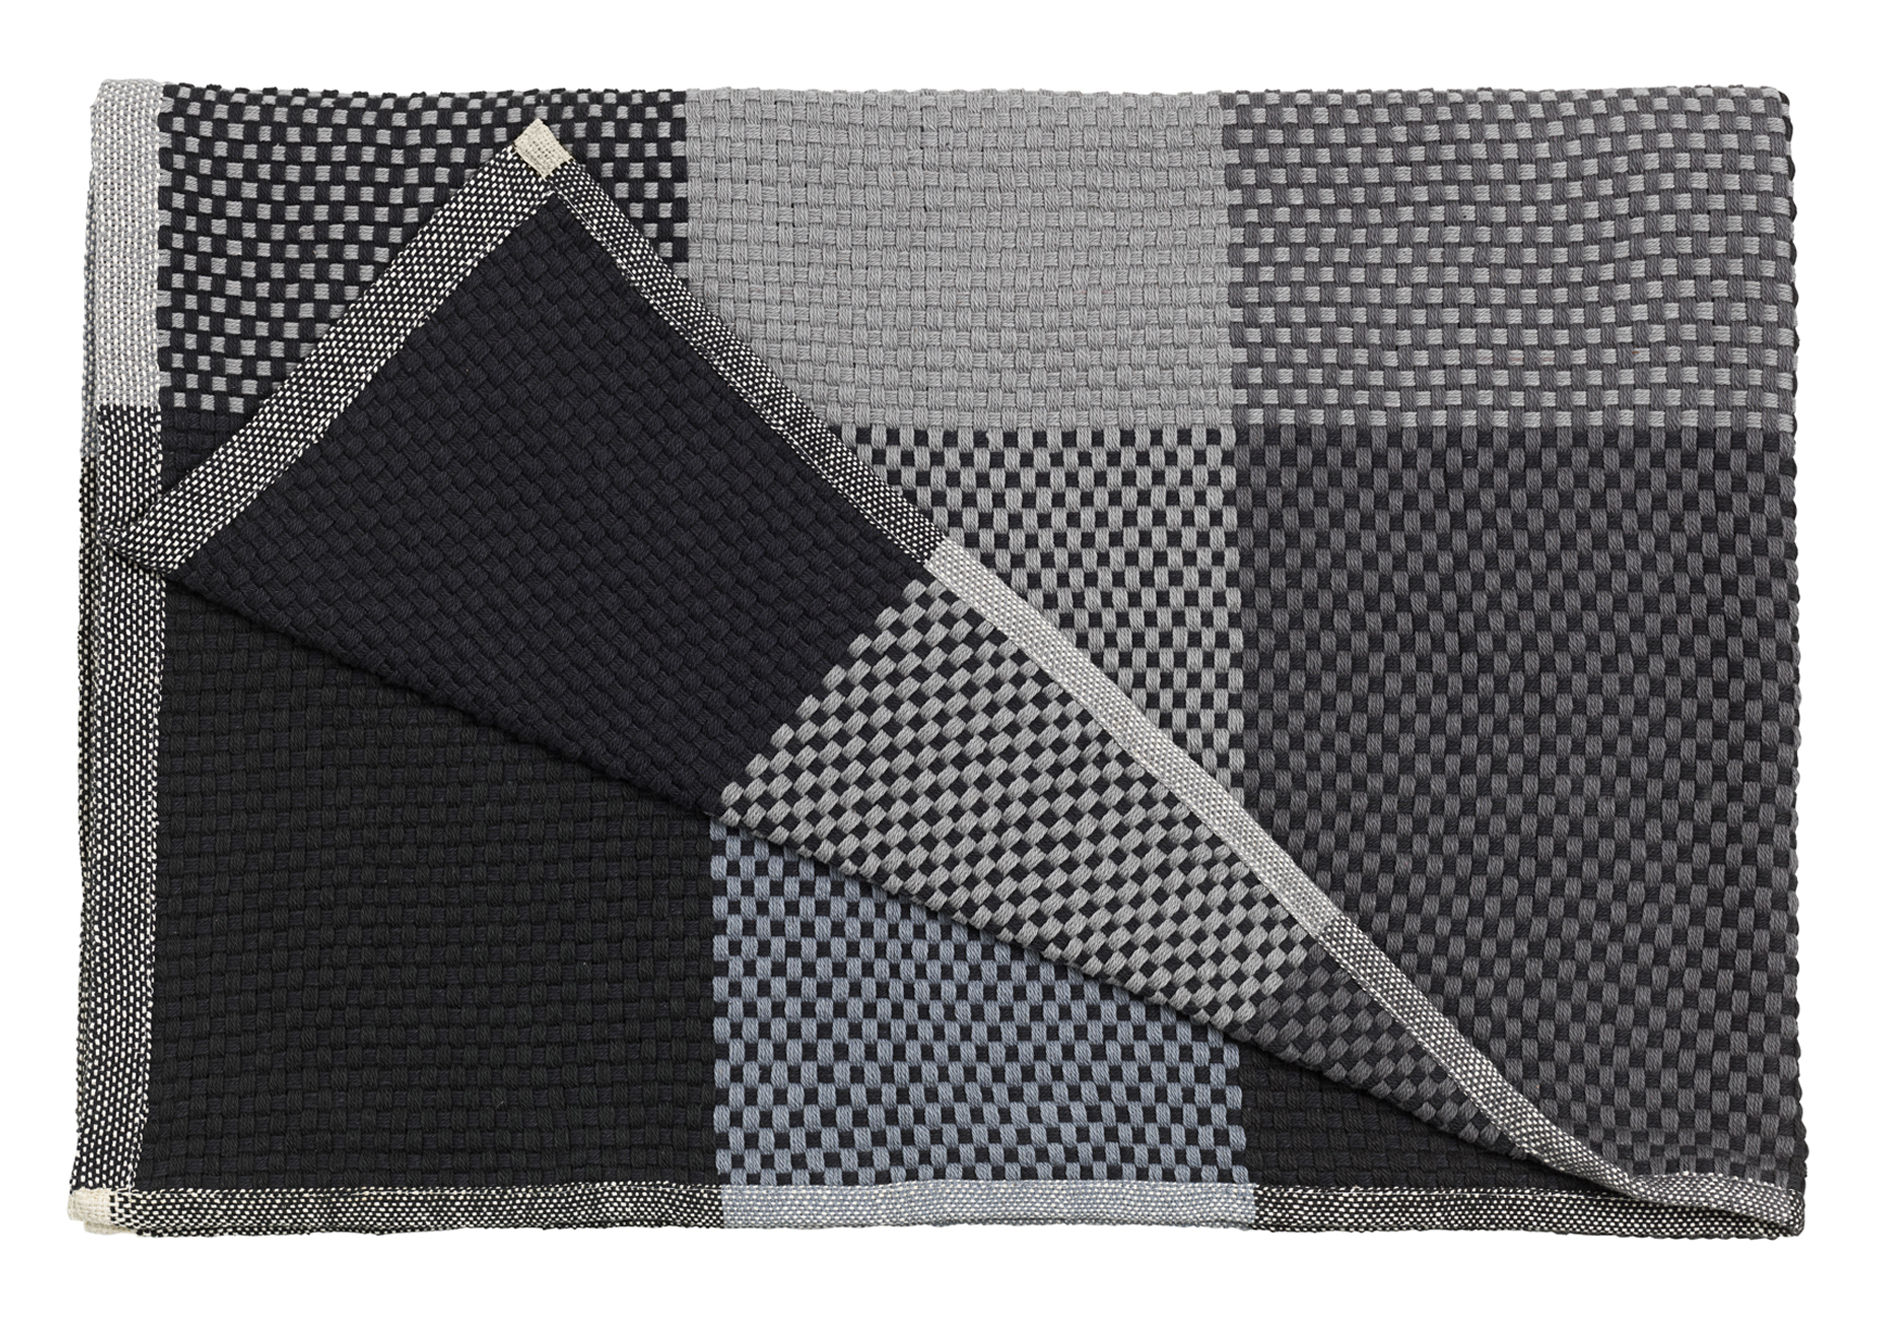 Decoration - Bedding & Bath Towels - Loom Plaid - 130 x 180 cm by Muuto - Black - Cotton